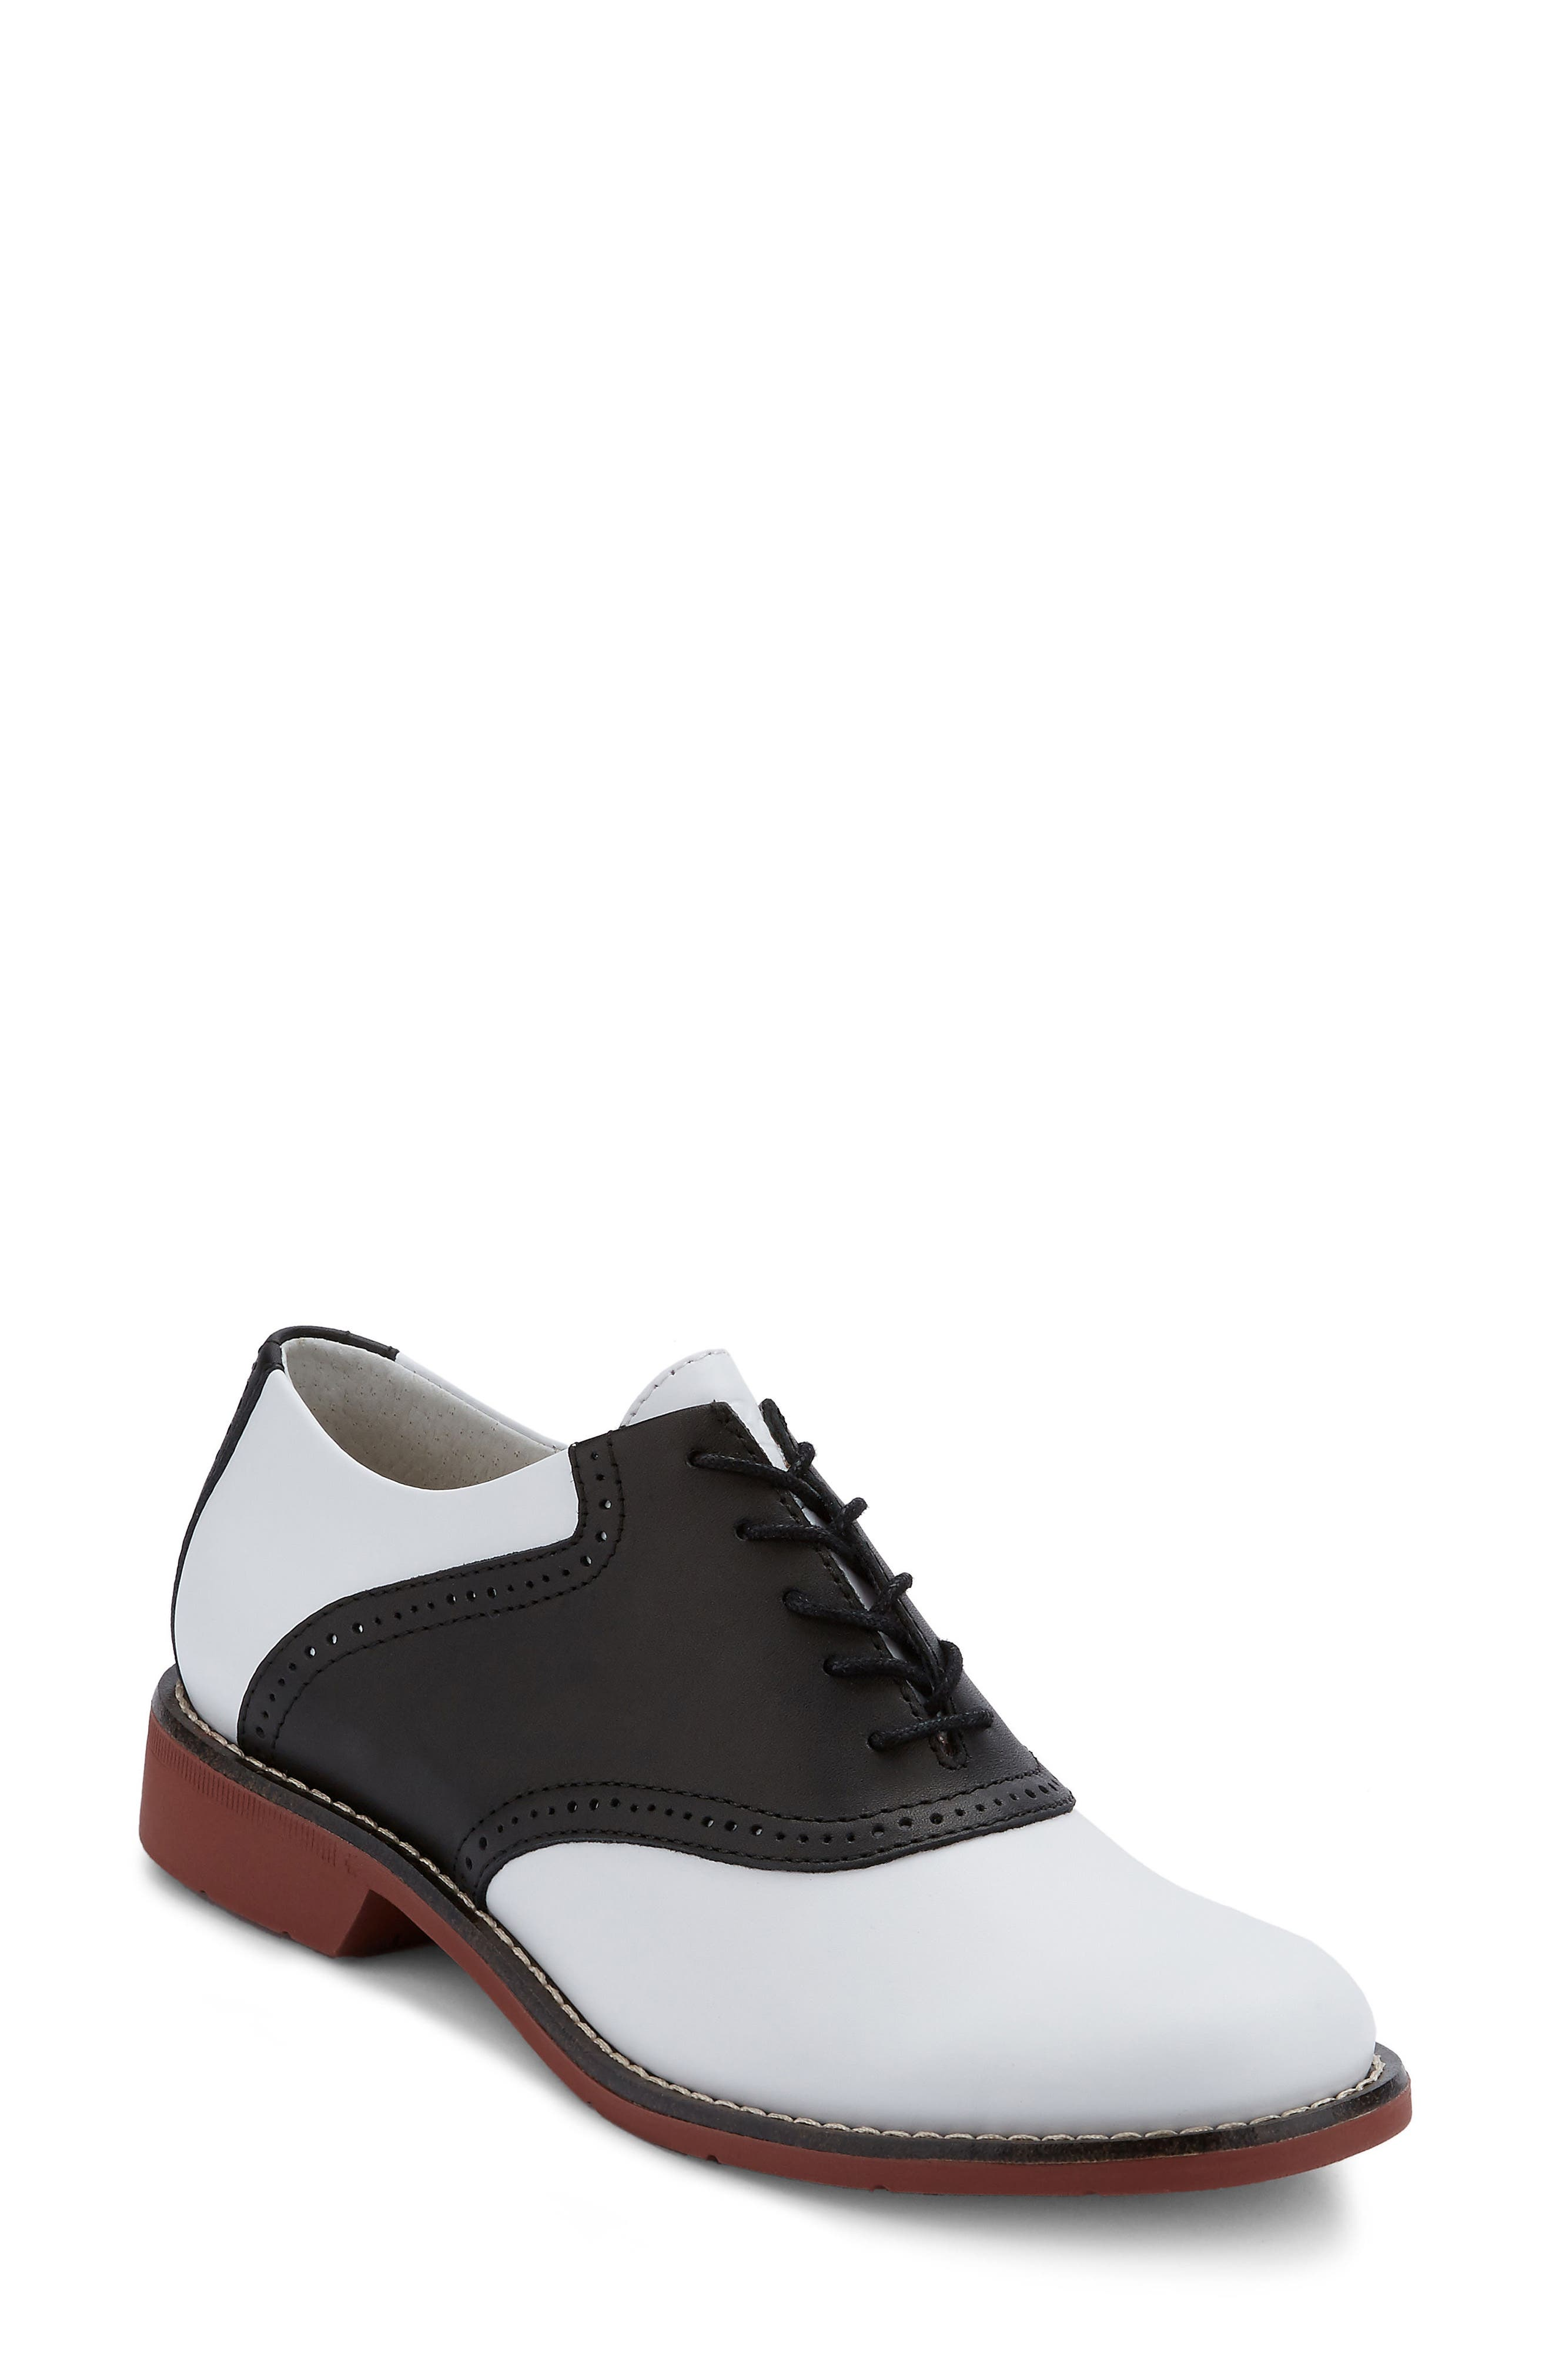 G.H. Bass and Co. Dora Lace-Up Oxford,                         Main,                         color, BLACK/ WHITE LEATHER